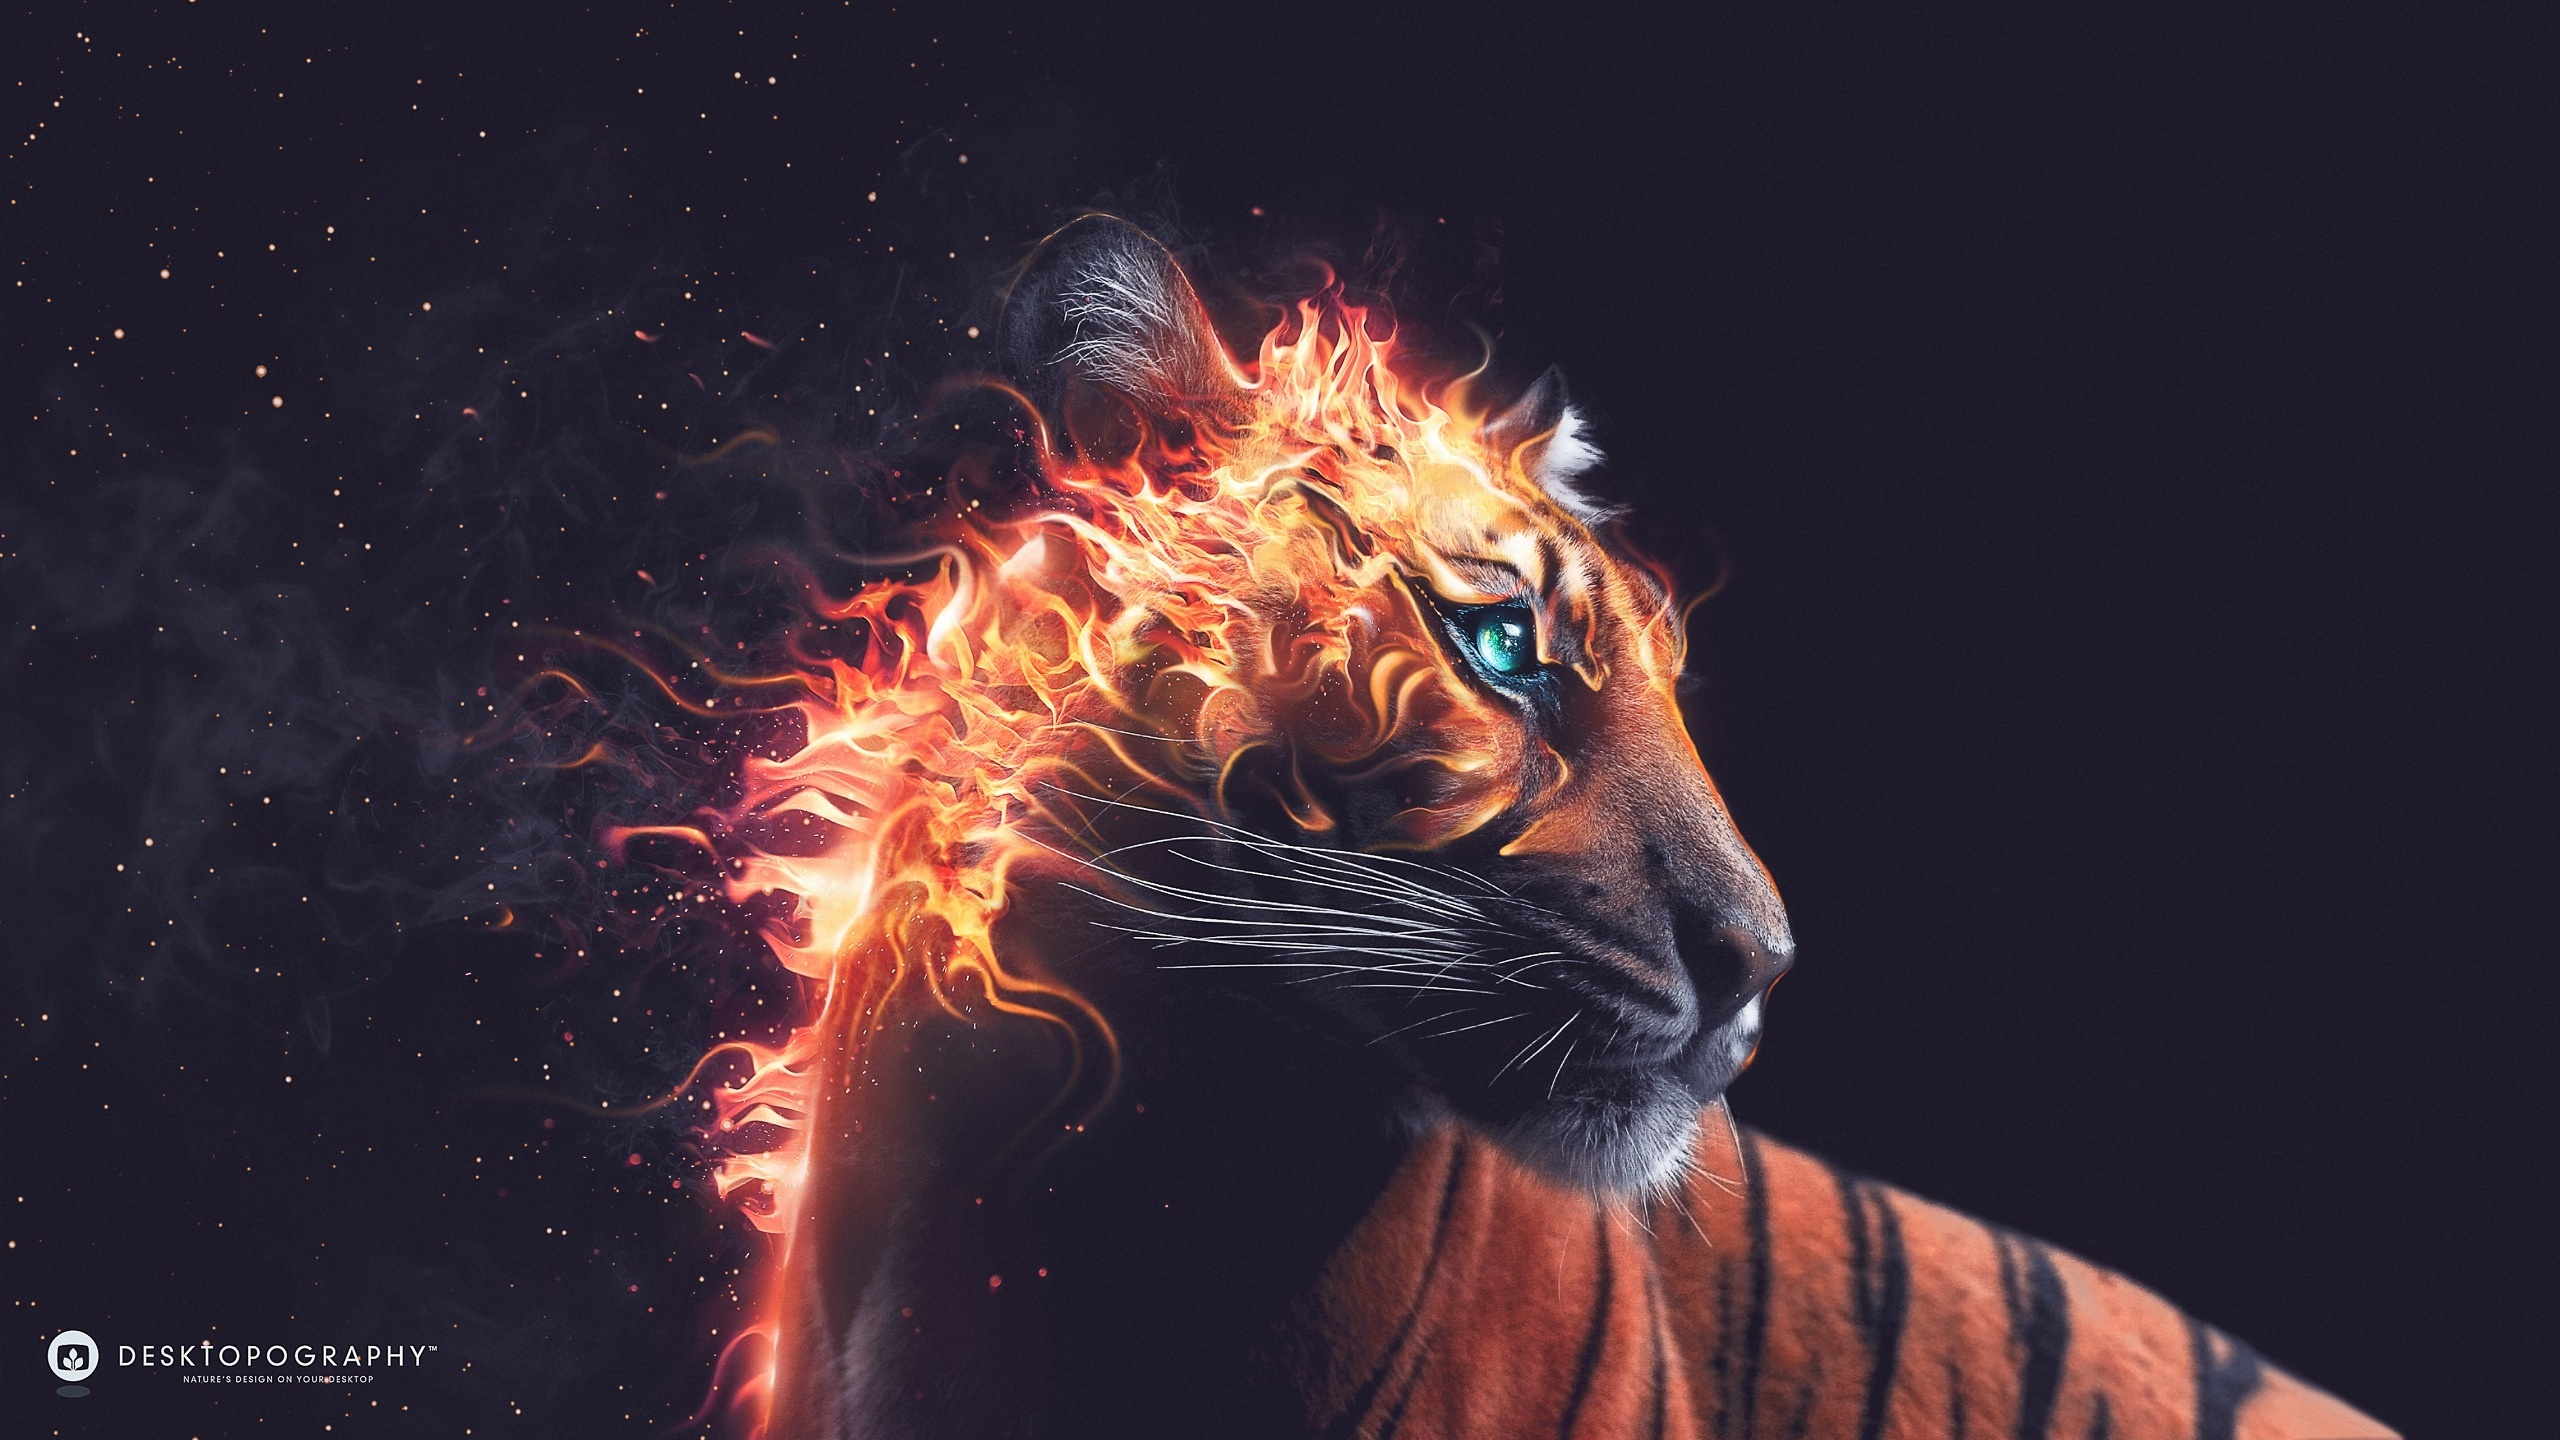 Tiger Fire Wallpapers HD Wallpapers 2560x1440